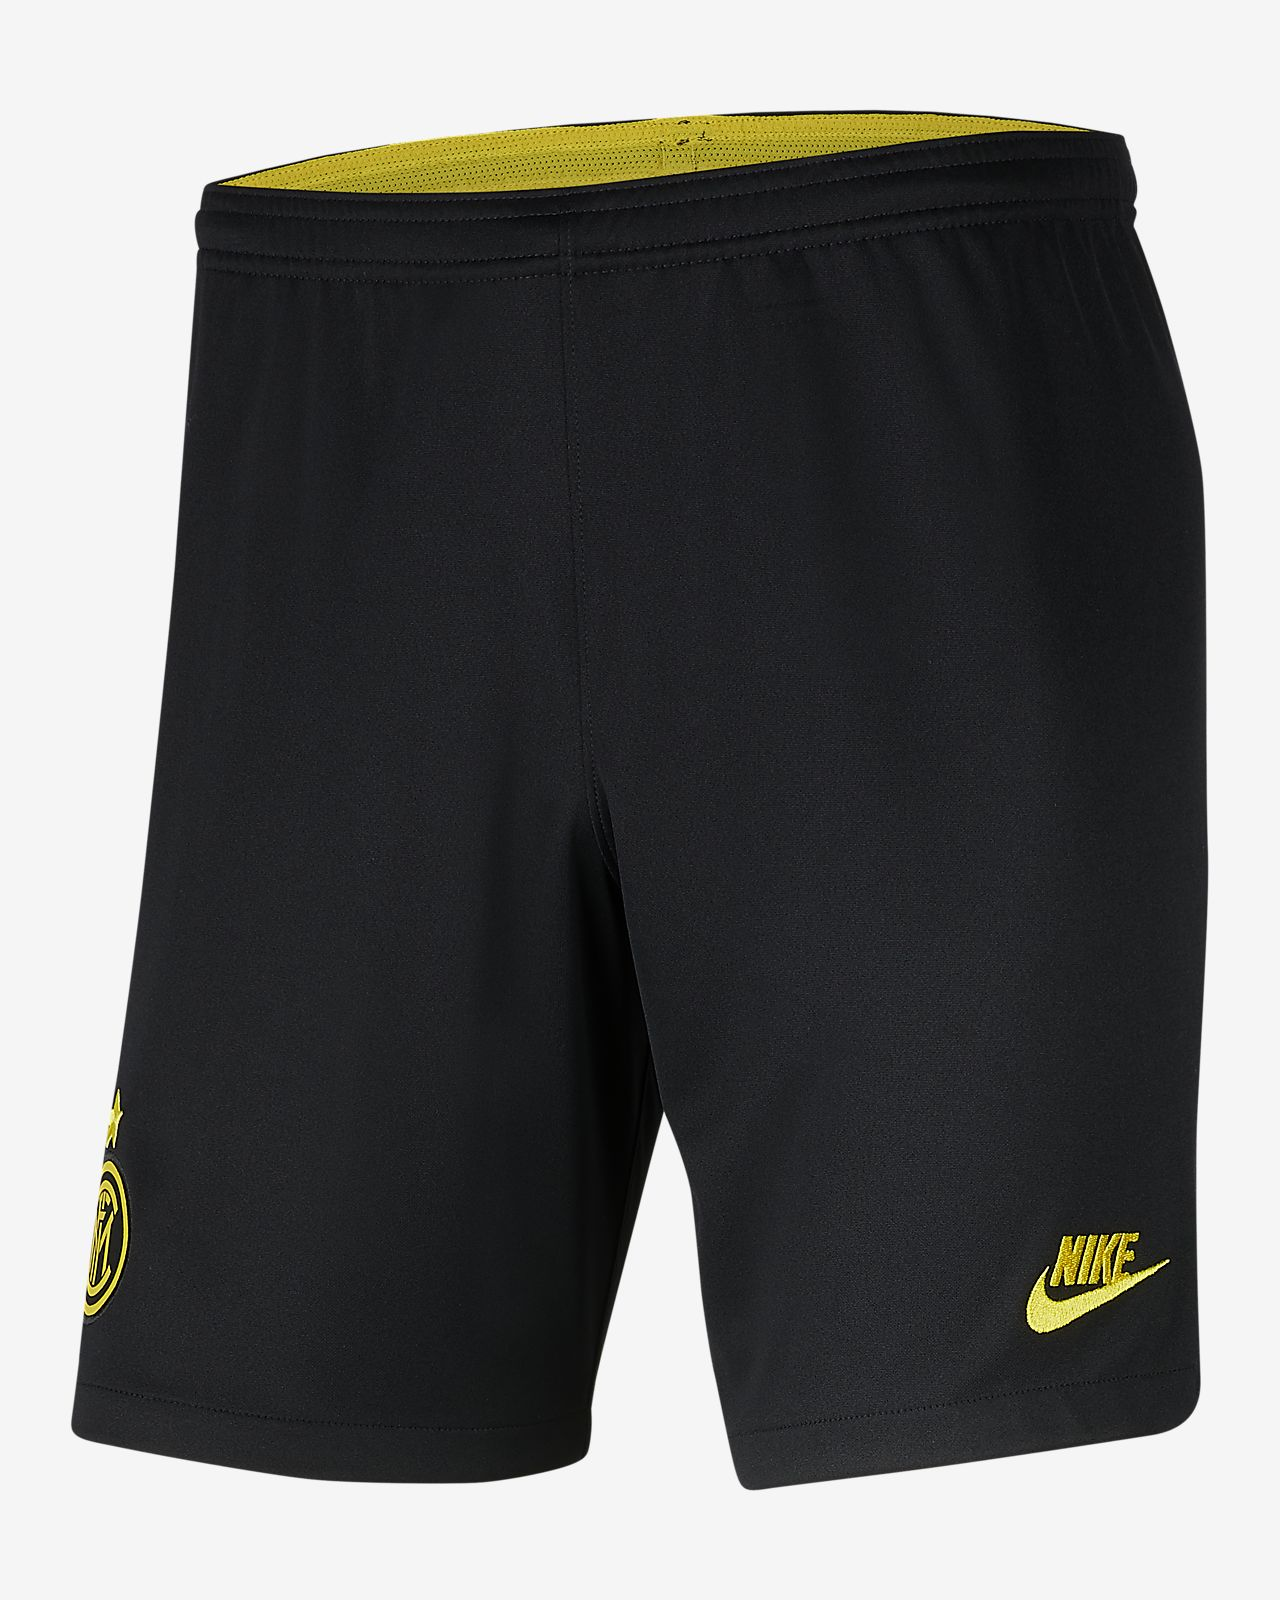 Inter Milan 2019/20 Stadium Third Men's Football Shorts